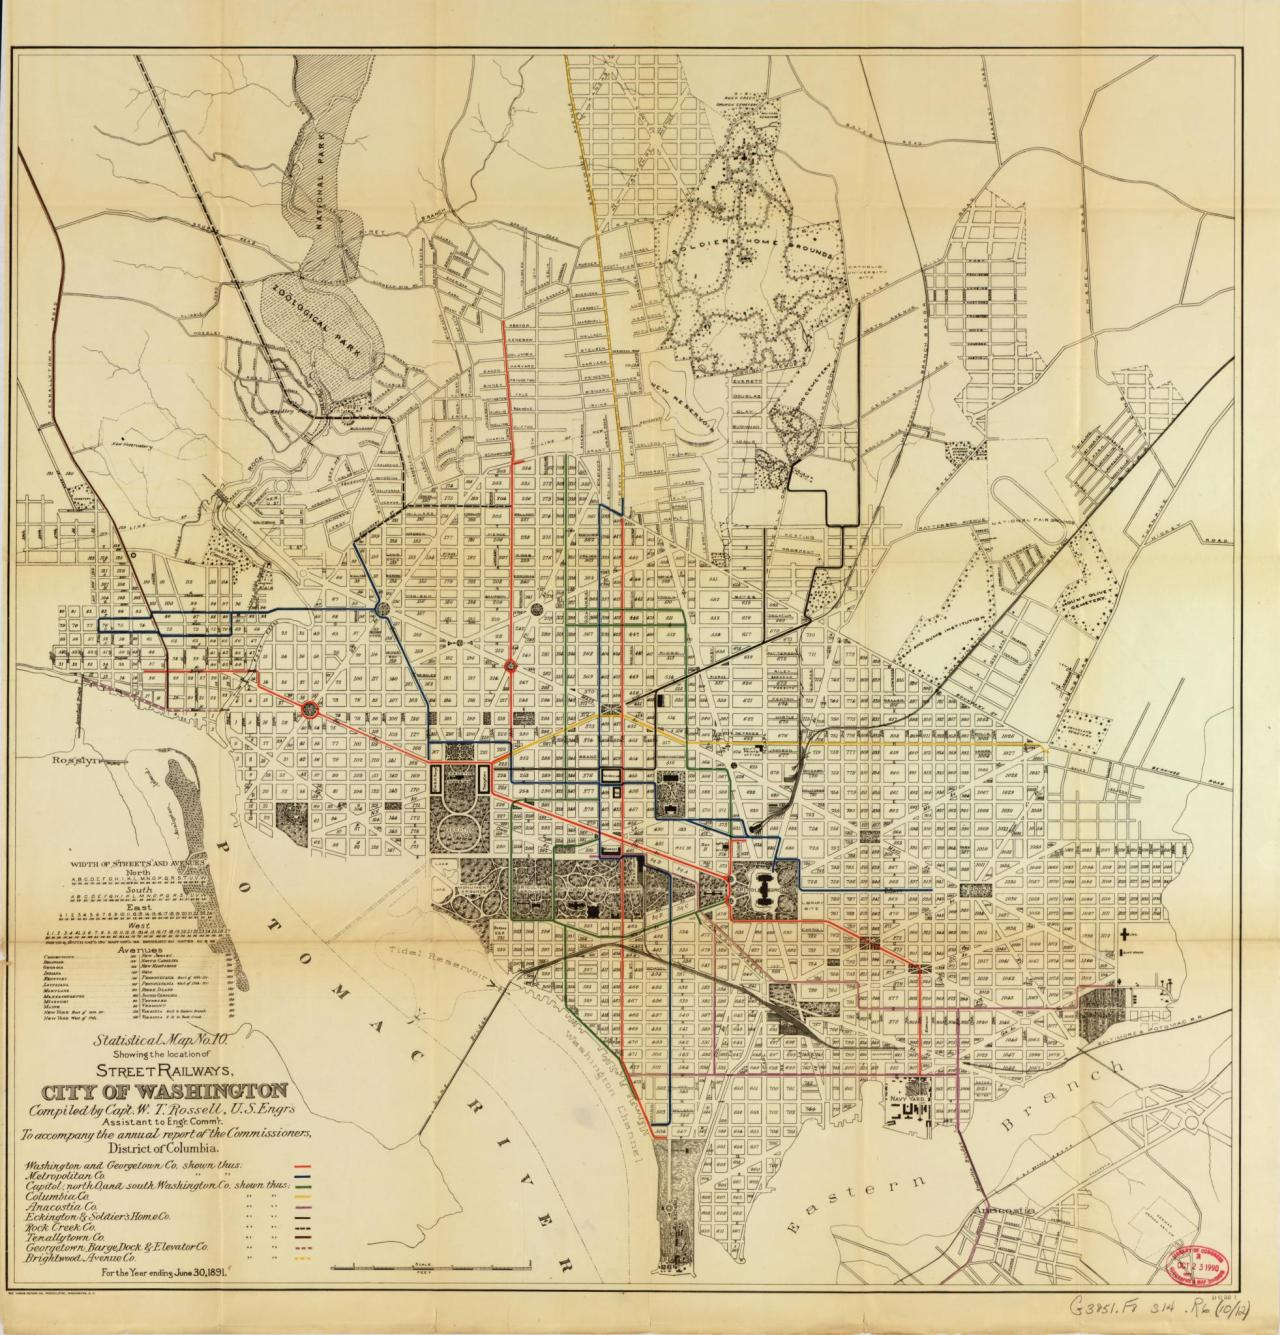 Historical Map Street Railways City of Transit Maps